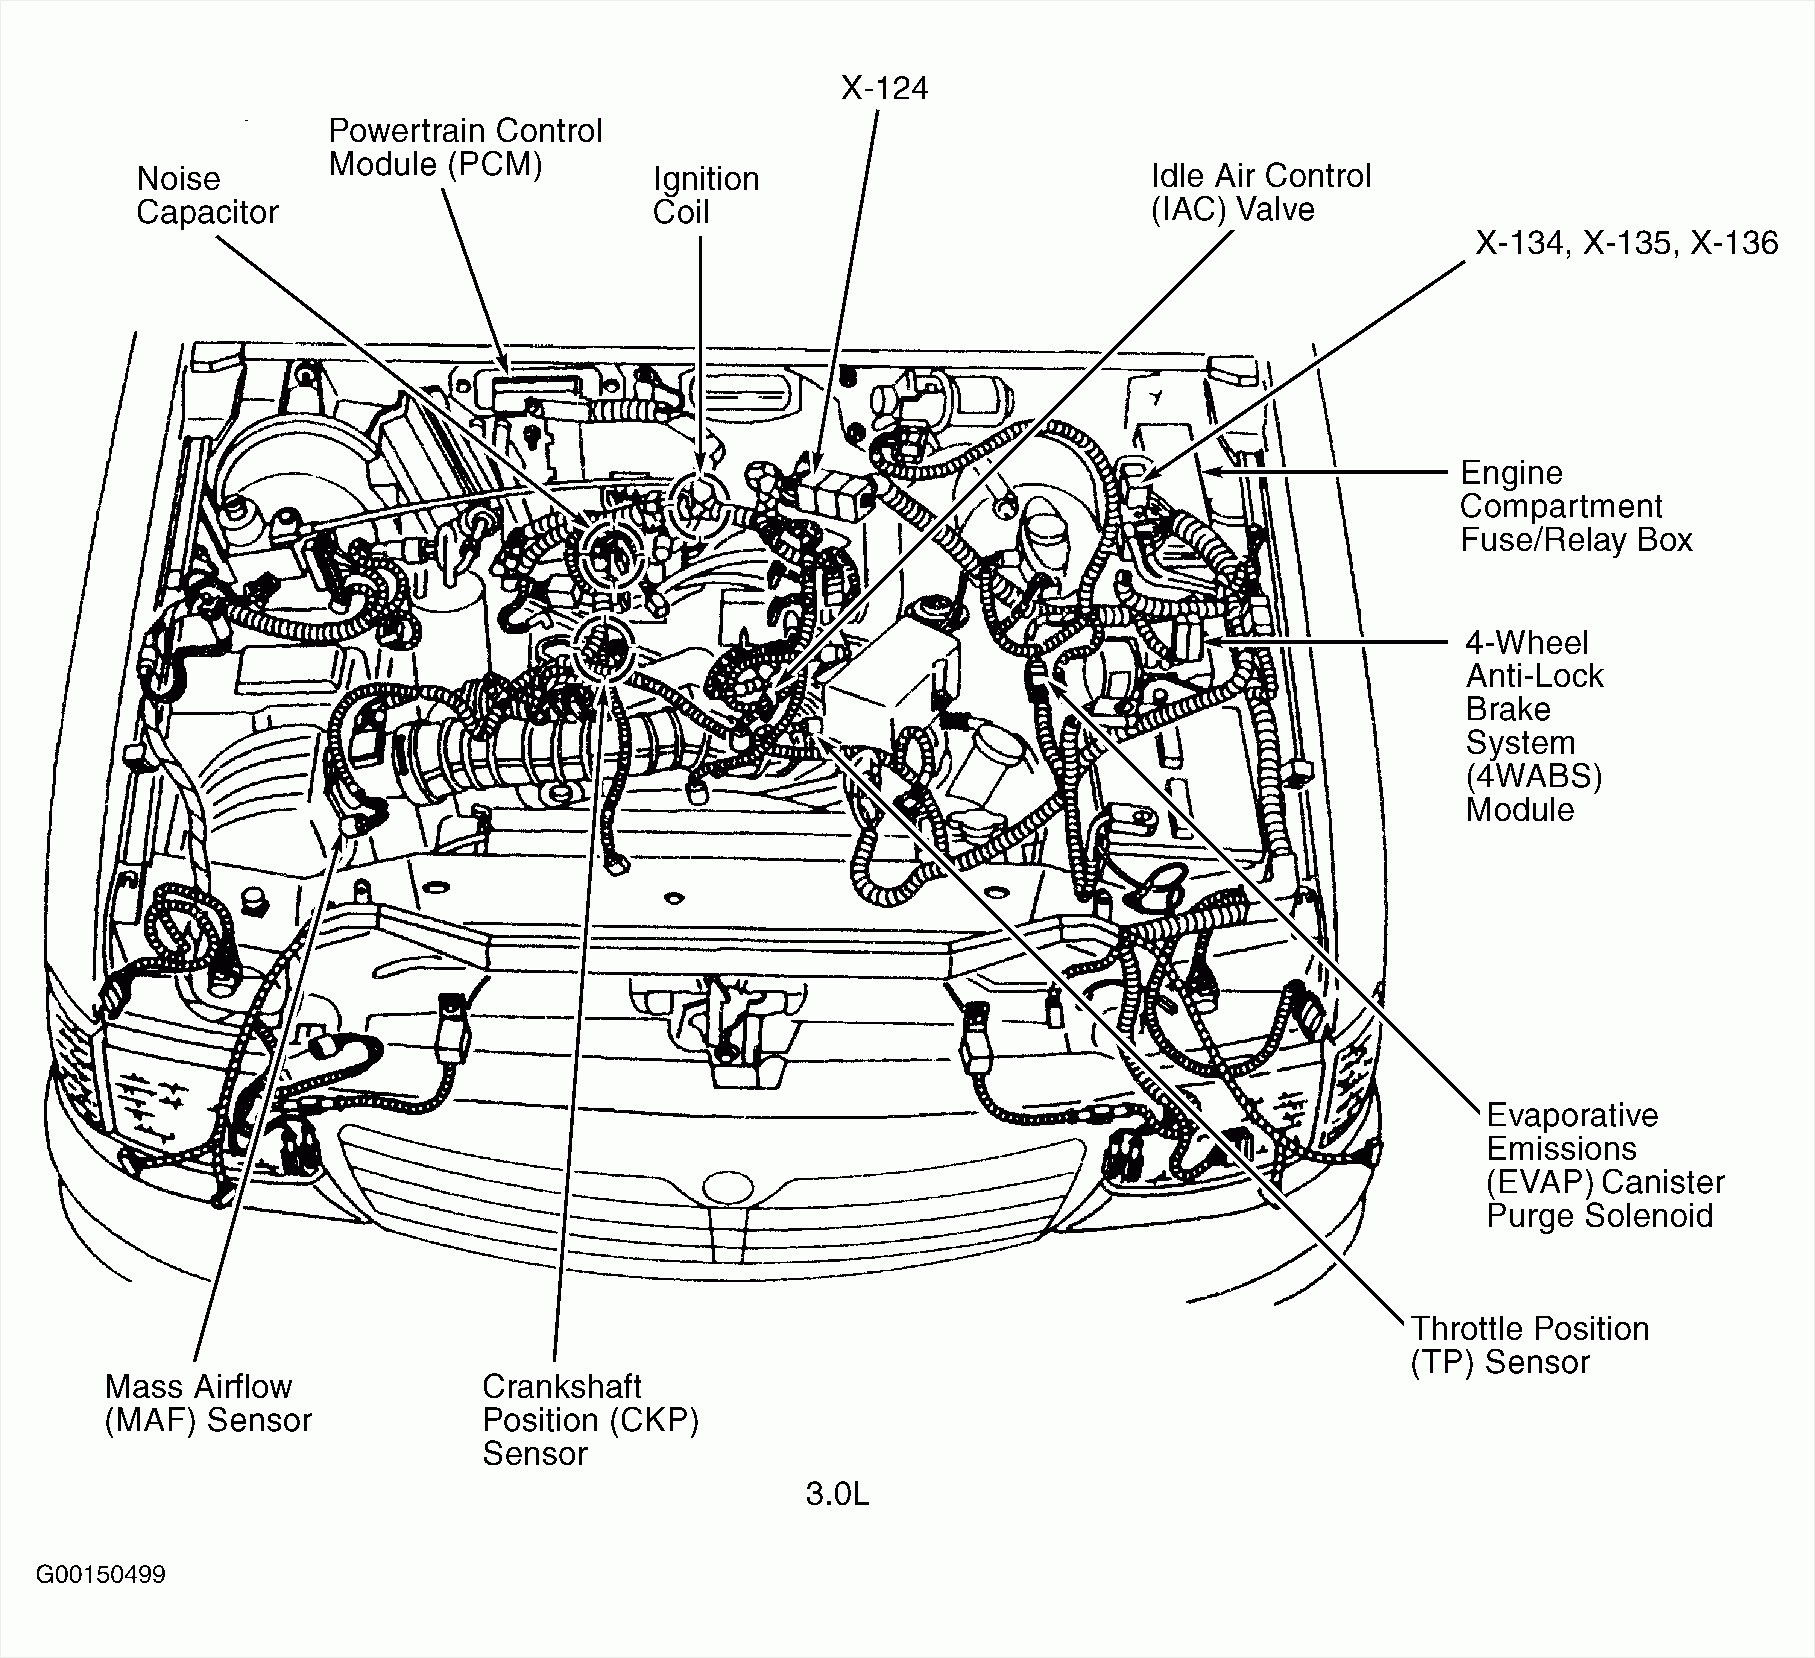 1997 Pontiac Firebird Engine Diagram Great Installation Of Wiring 99 Montana 3 4 Schematic Diagrams Rh 46 Koch Foerderbandtrommeln De 1999 2001